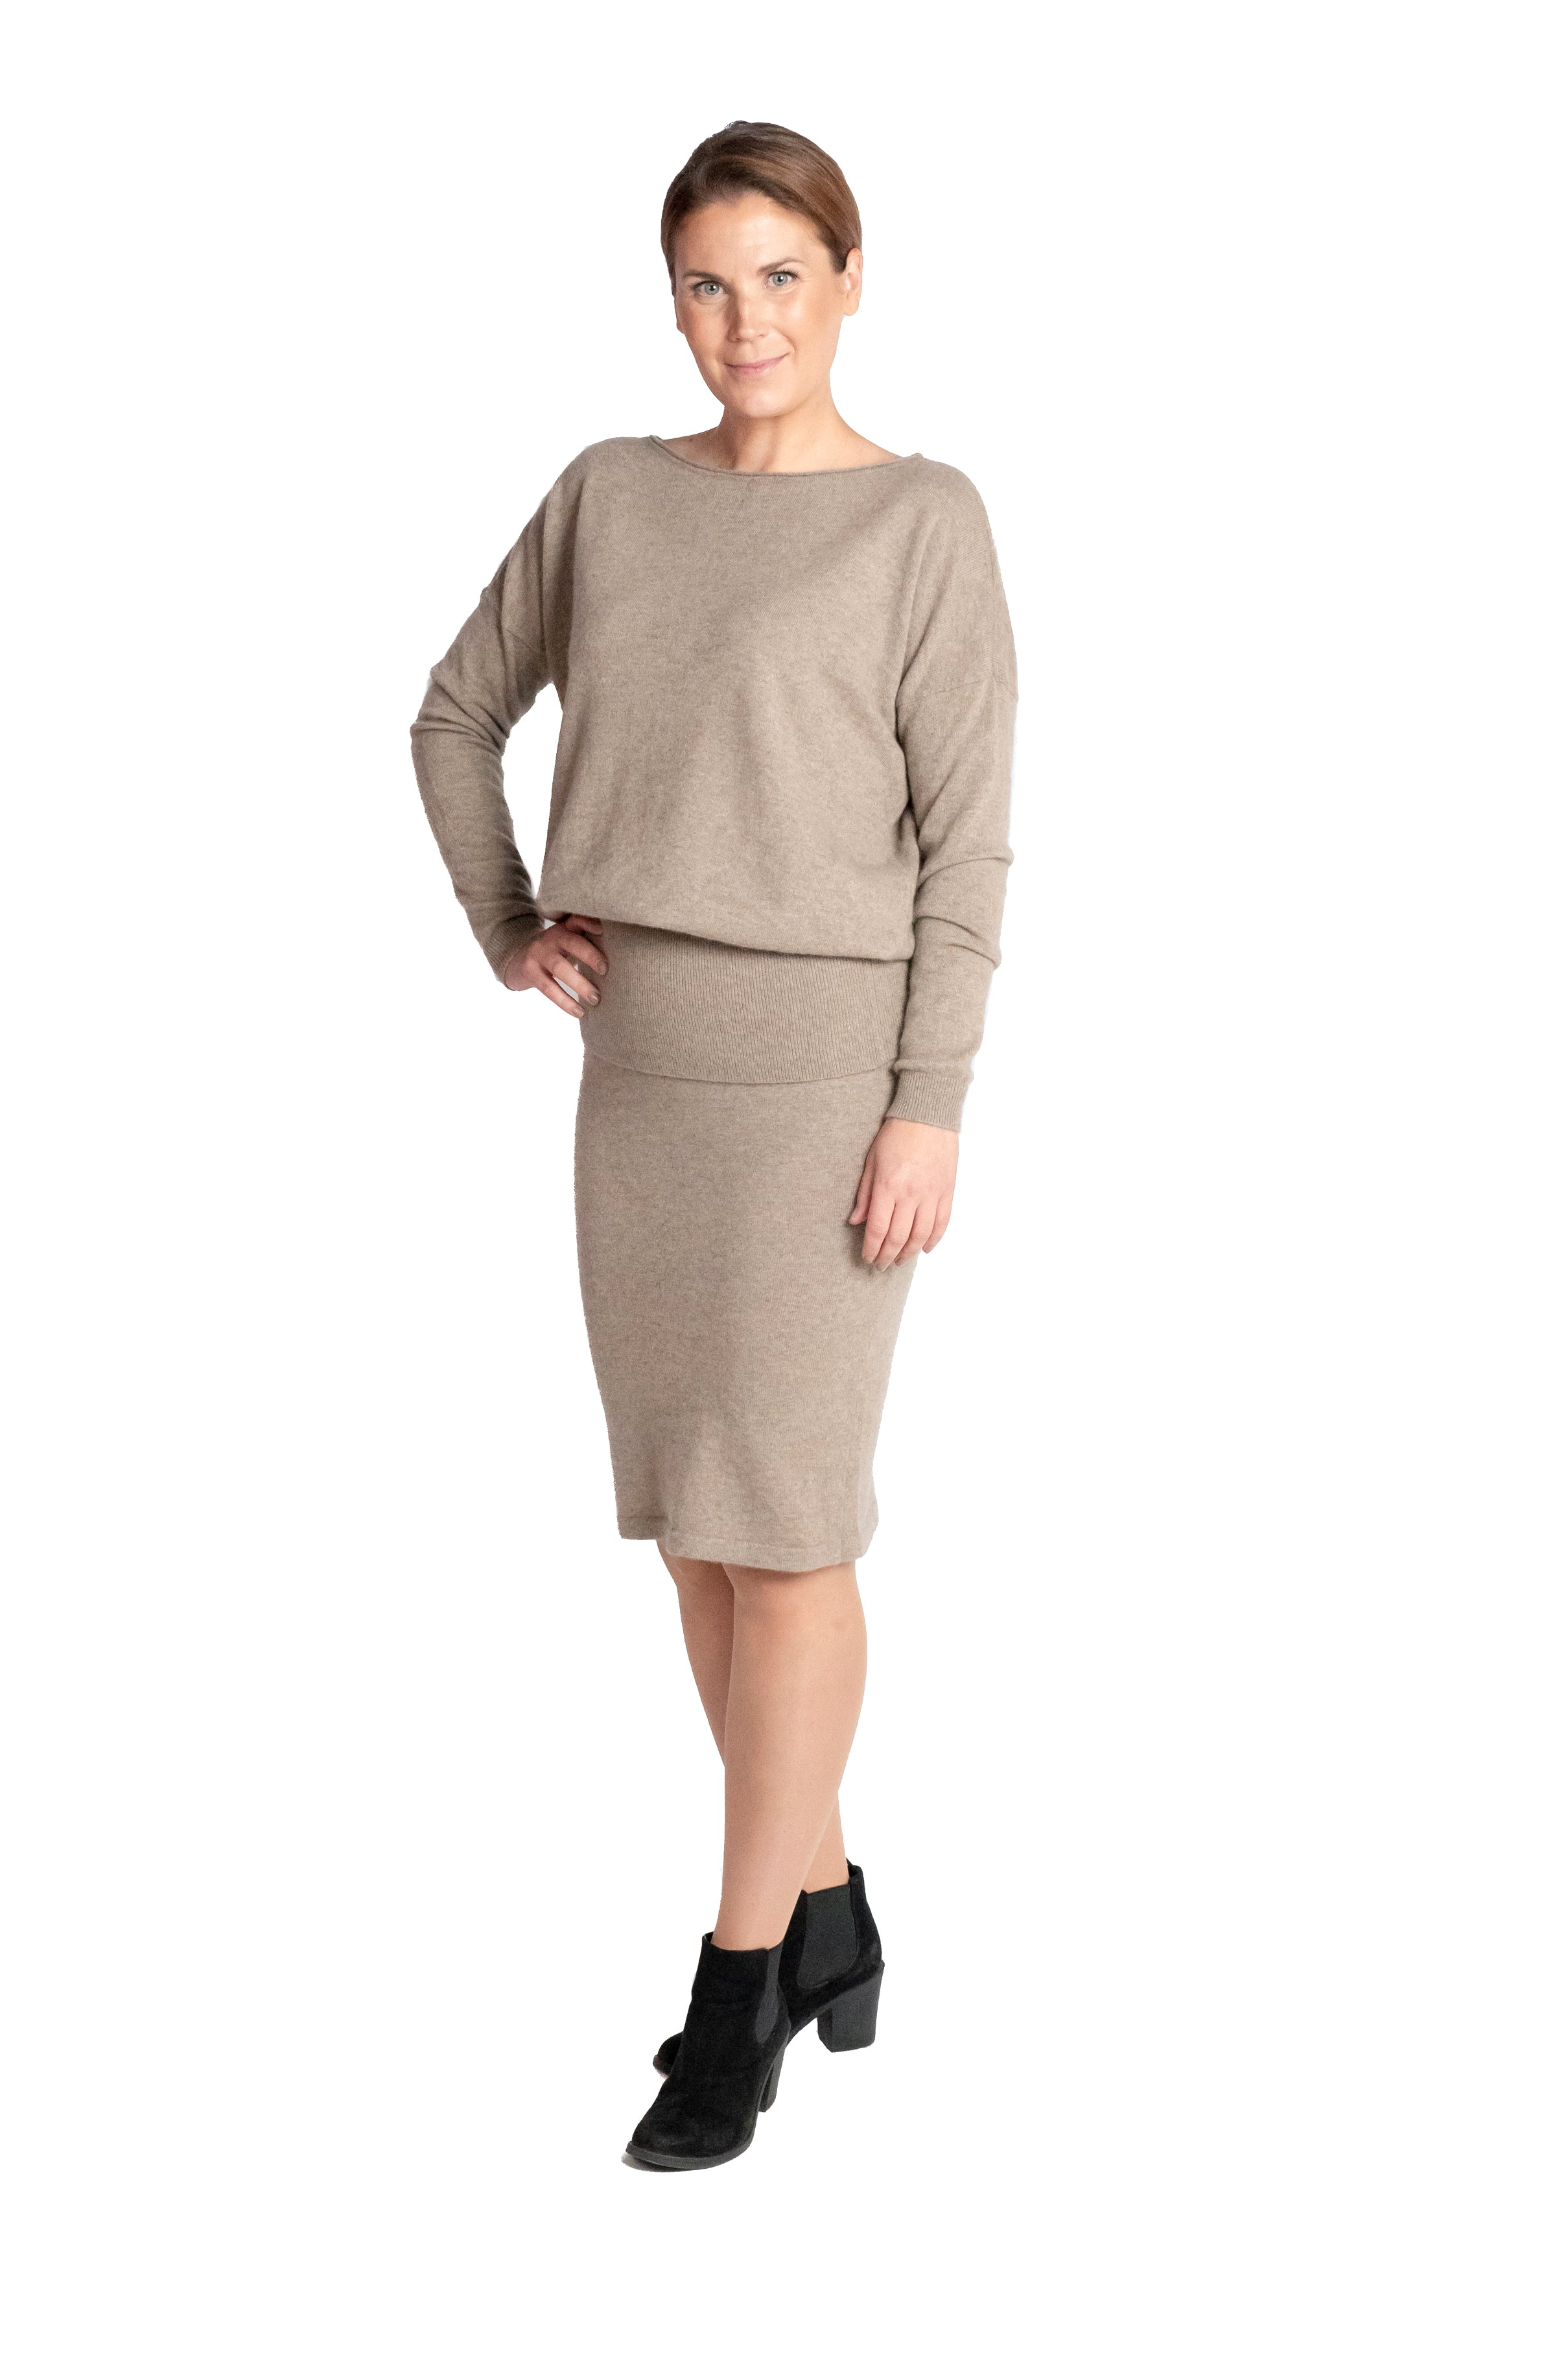 Inari Women's brown cashmere O-neck sweater - front side - 100% high-quality cashmere - Inari-clothing.fi